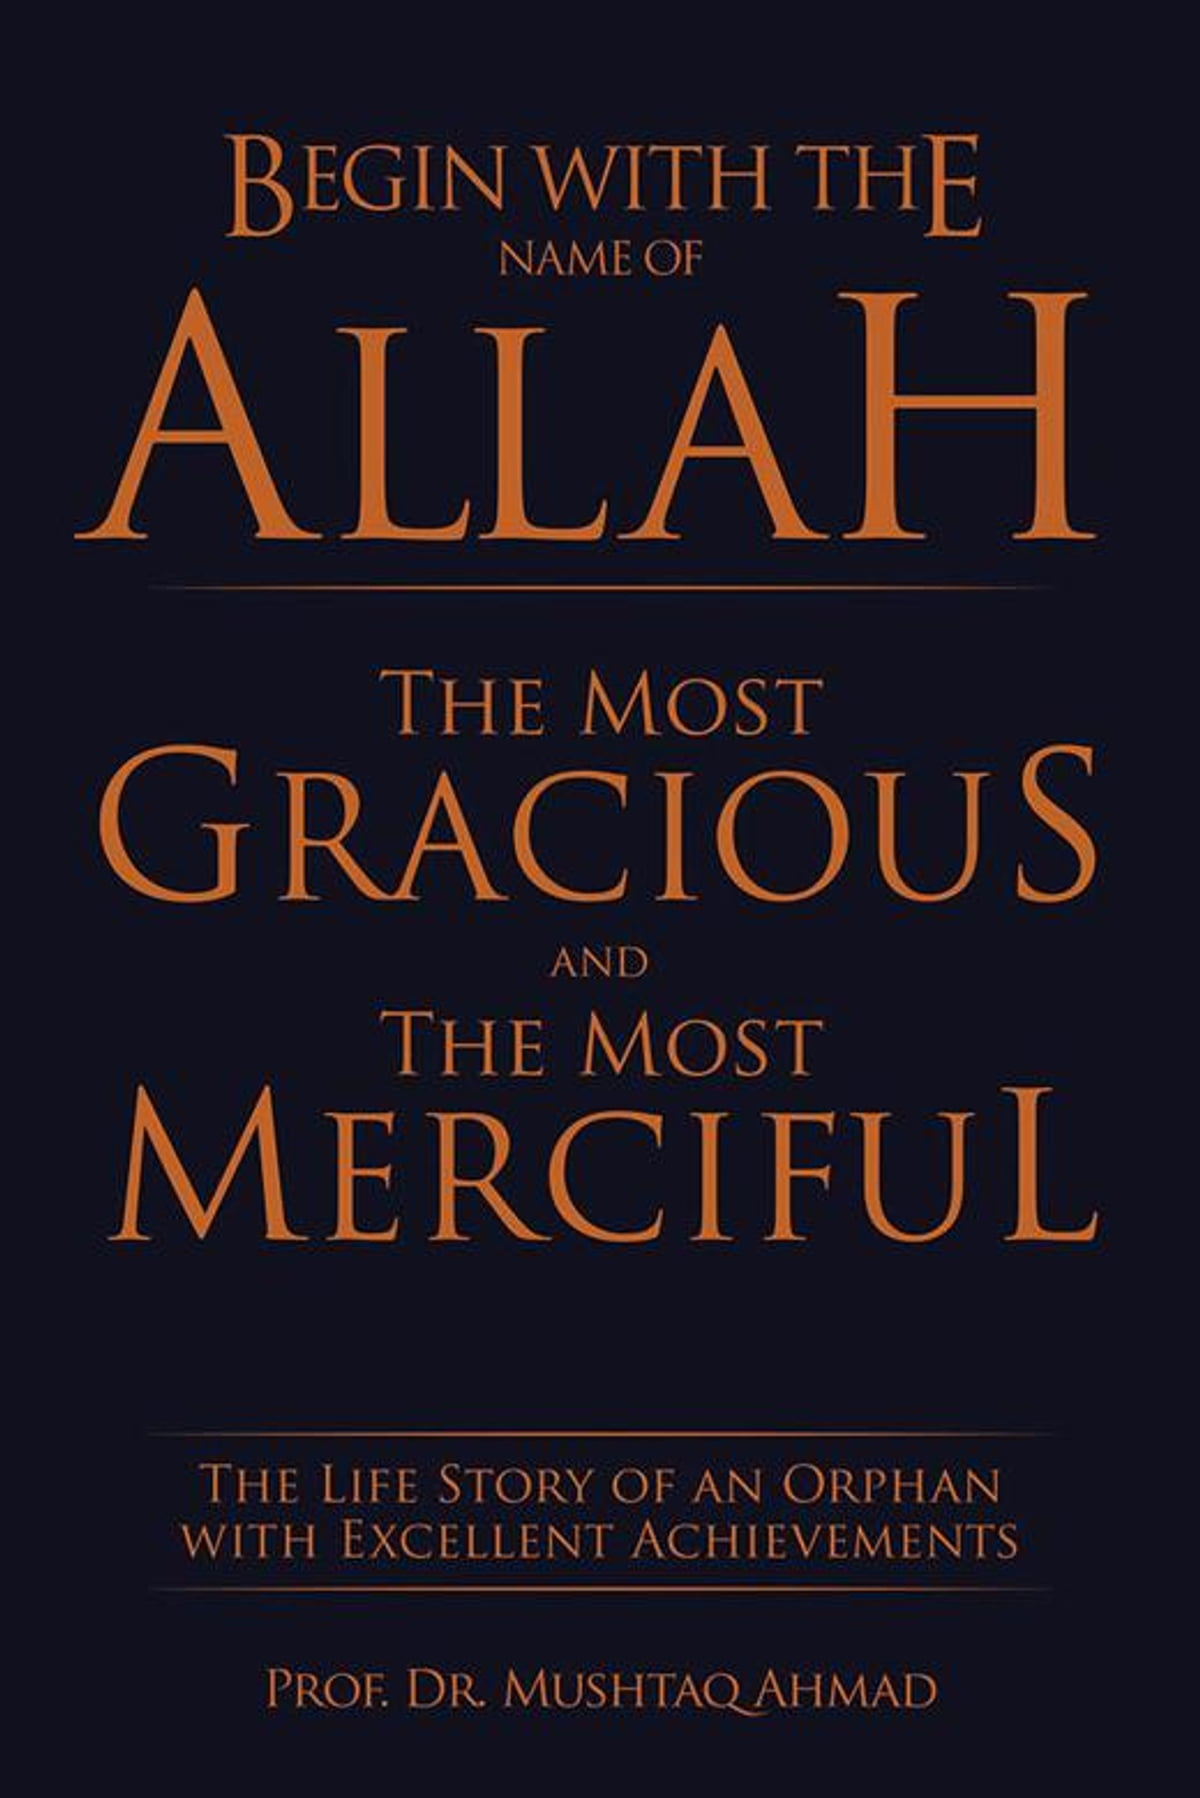 Begin with the Name of Allah the Most Gracious and the Most Merciful eBook by Dr. Mushtaq Ahmad - 9781514474792 | Rakuten Kobo